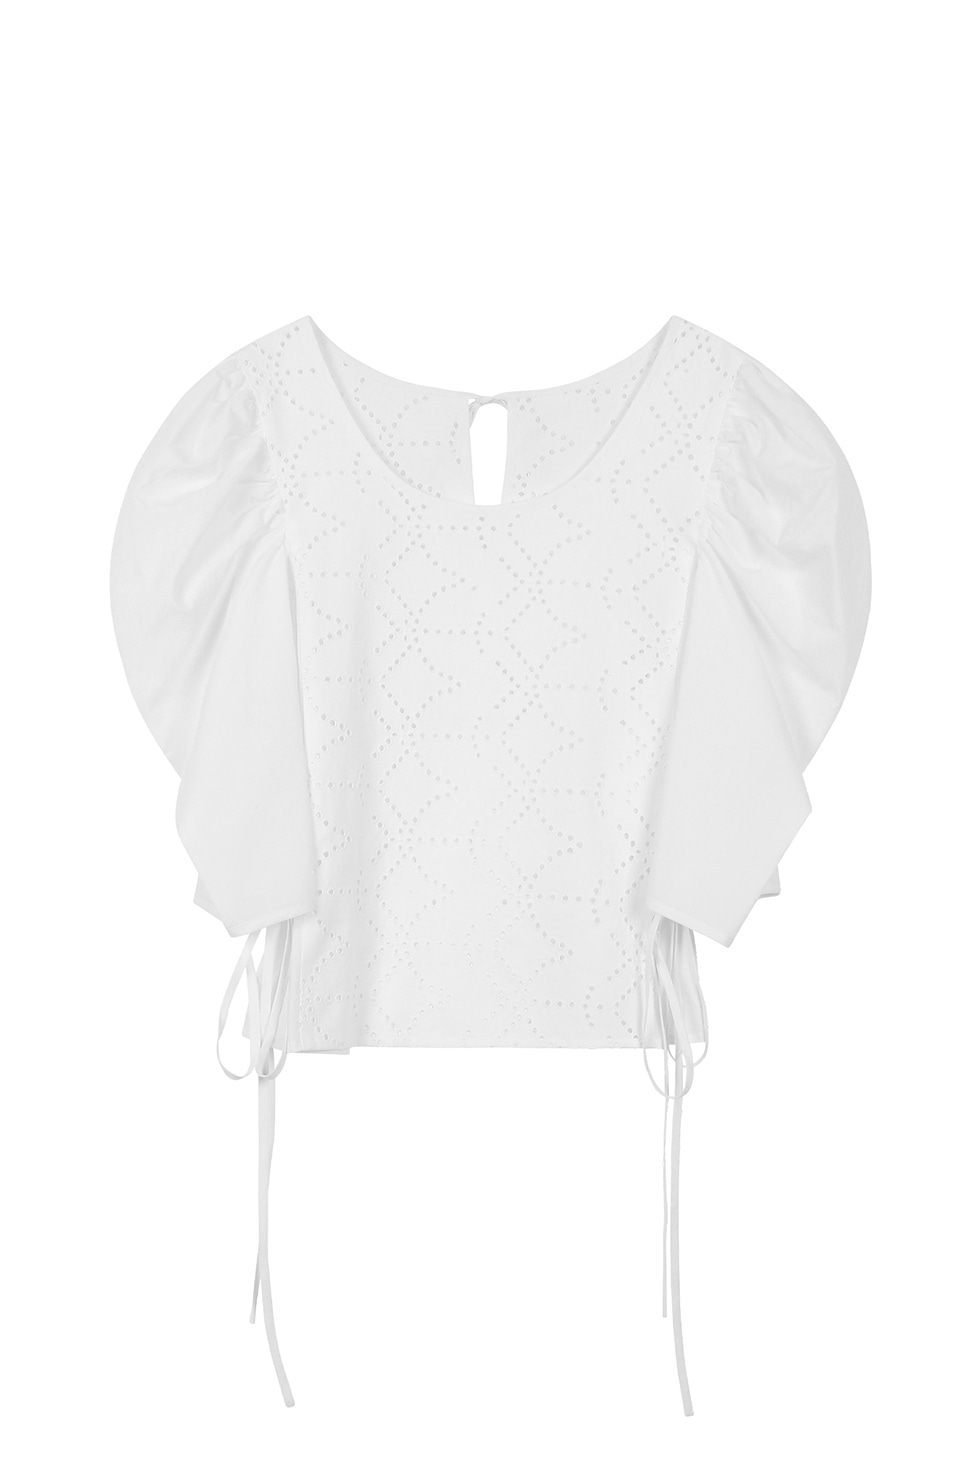 BIG PUFF COTTON BLOUSE - WHITE